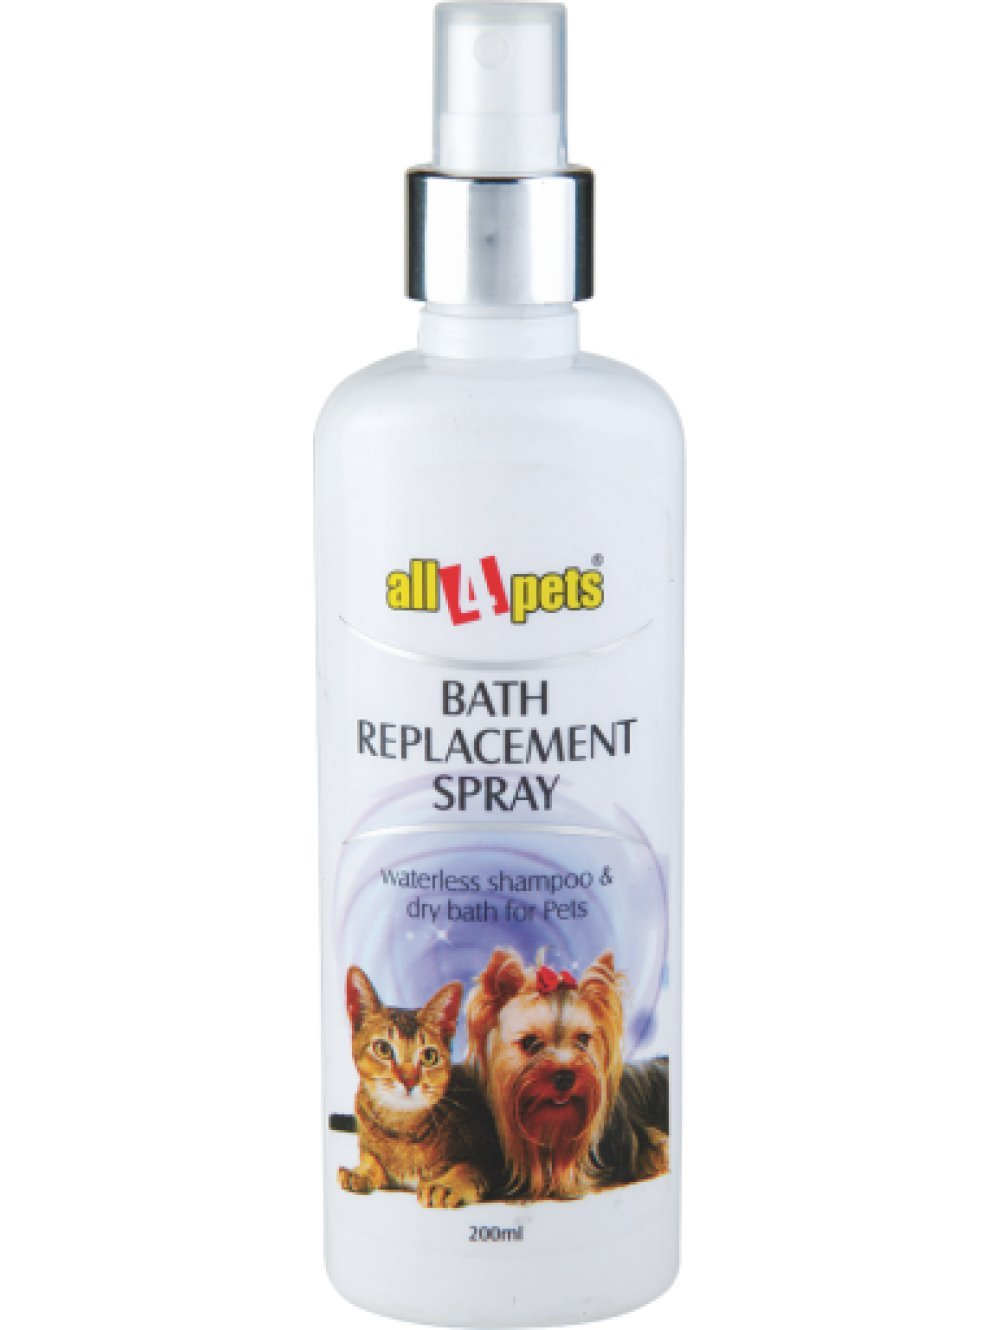 All4Pets Bath Replacement Spray